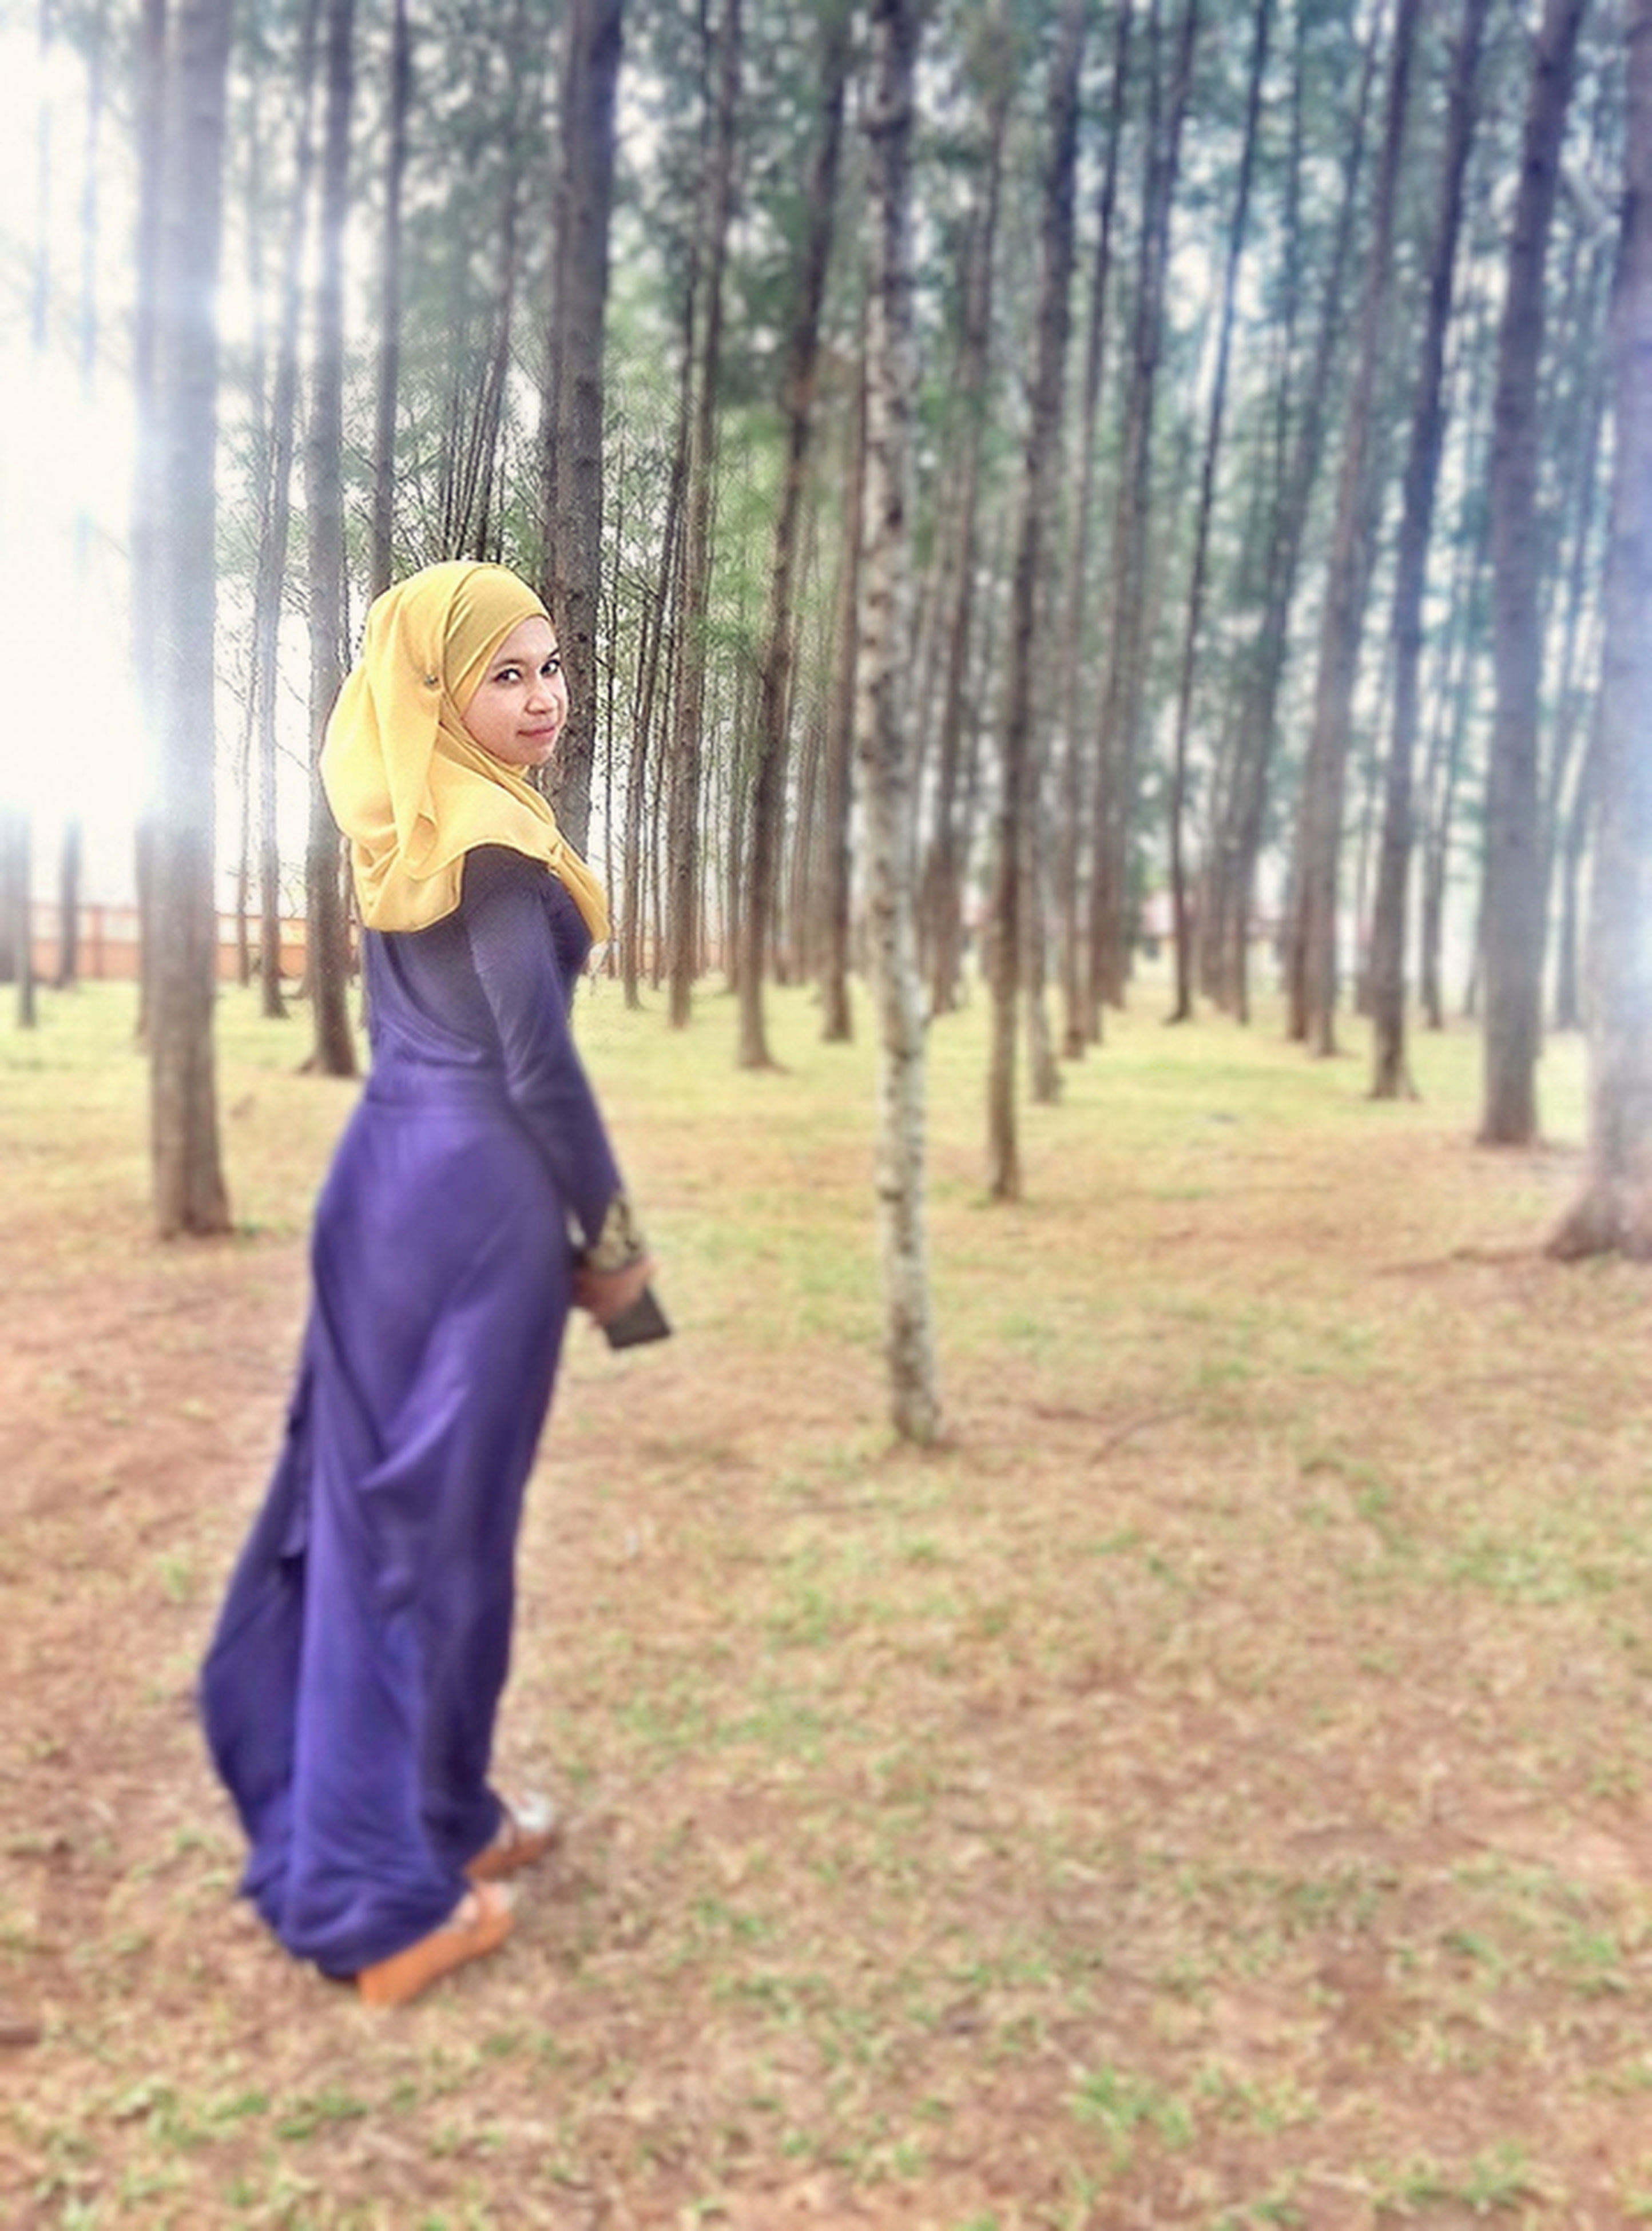 tree, lifestyles, casual clothing, leisure activity, forest, rear view, standing, full length, tree trunk, woodland, warm clothing, focus on foreground, field, nature, day, tranquility, front view, grass